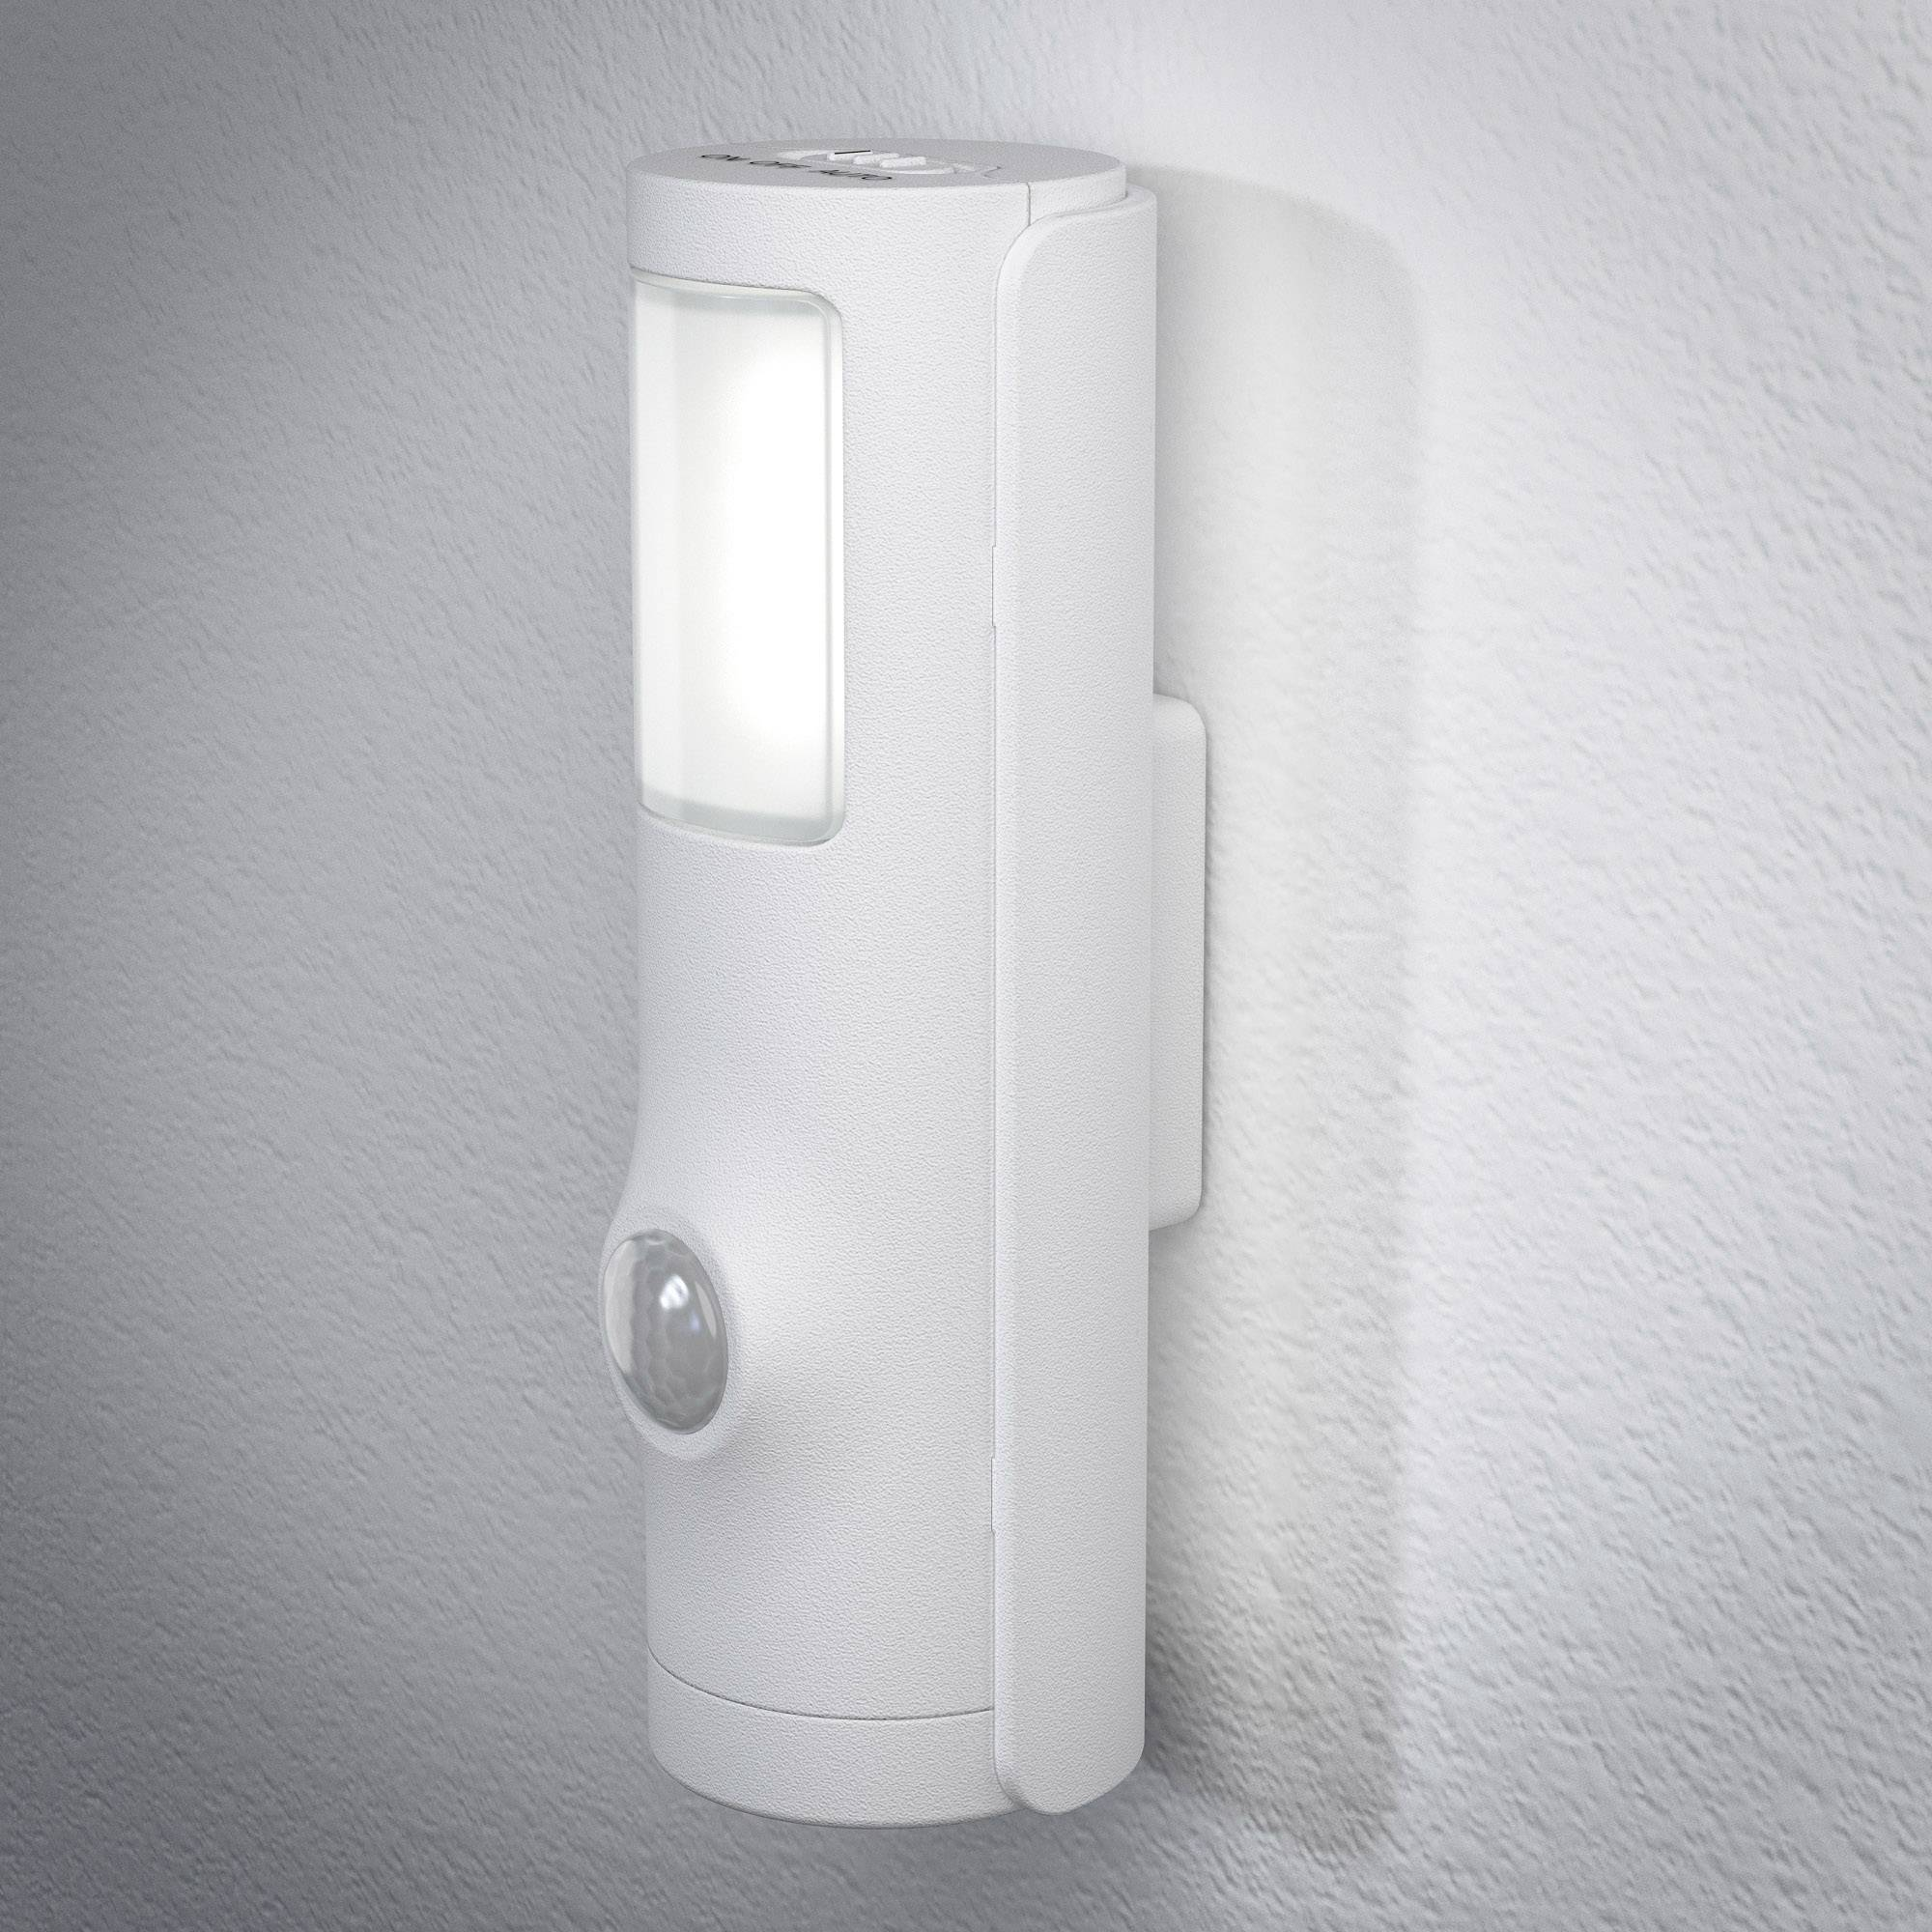 Cold White 0.3 W Osram Nightlux Stair LED Luminaire